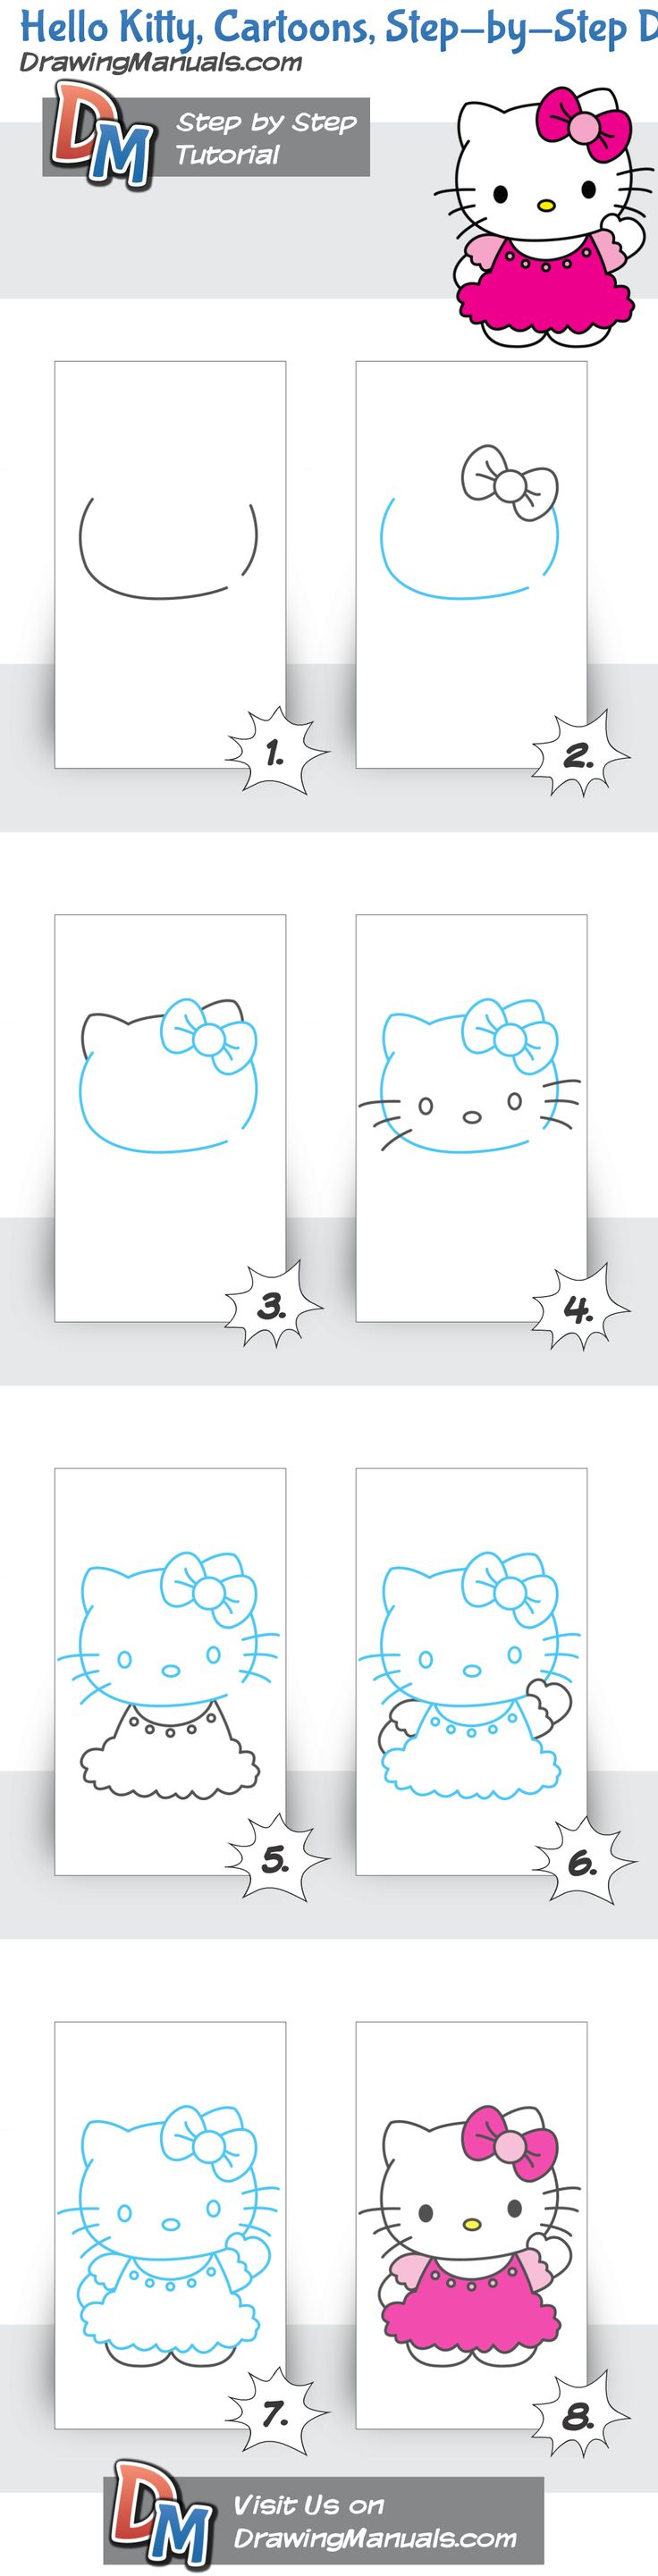 Hello Kitty, Cartoons, Step-by-Step Drawing Tutorial